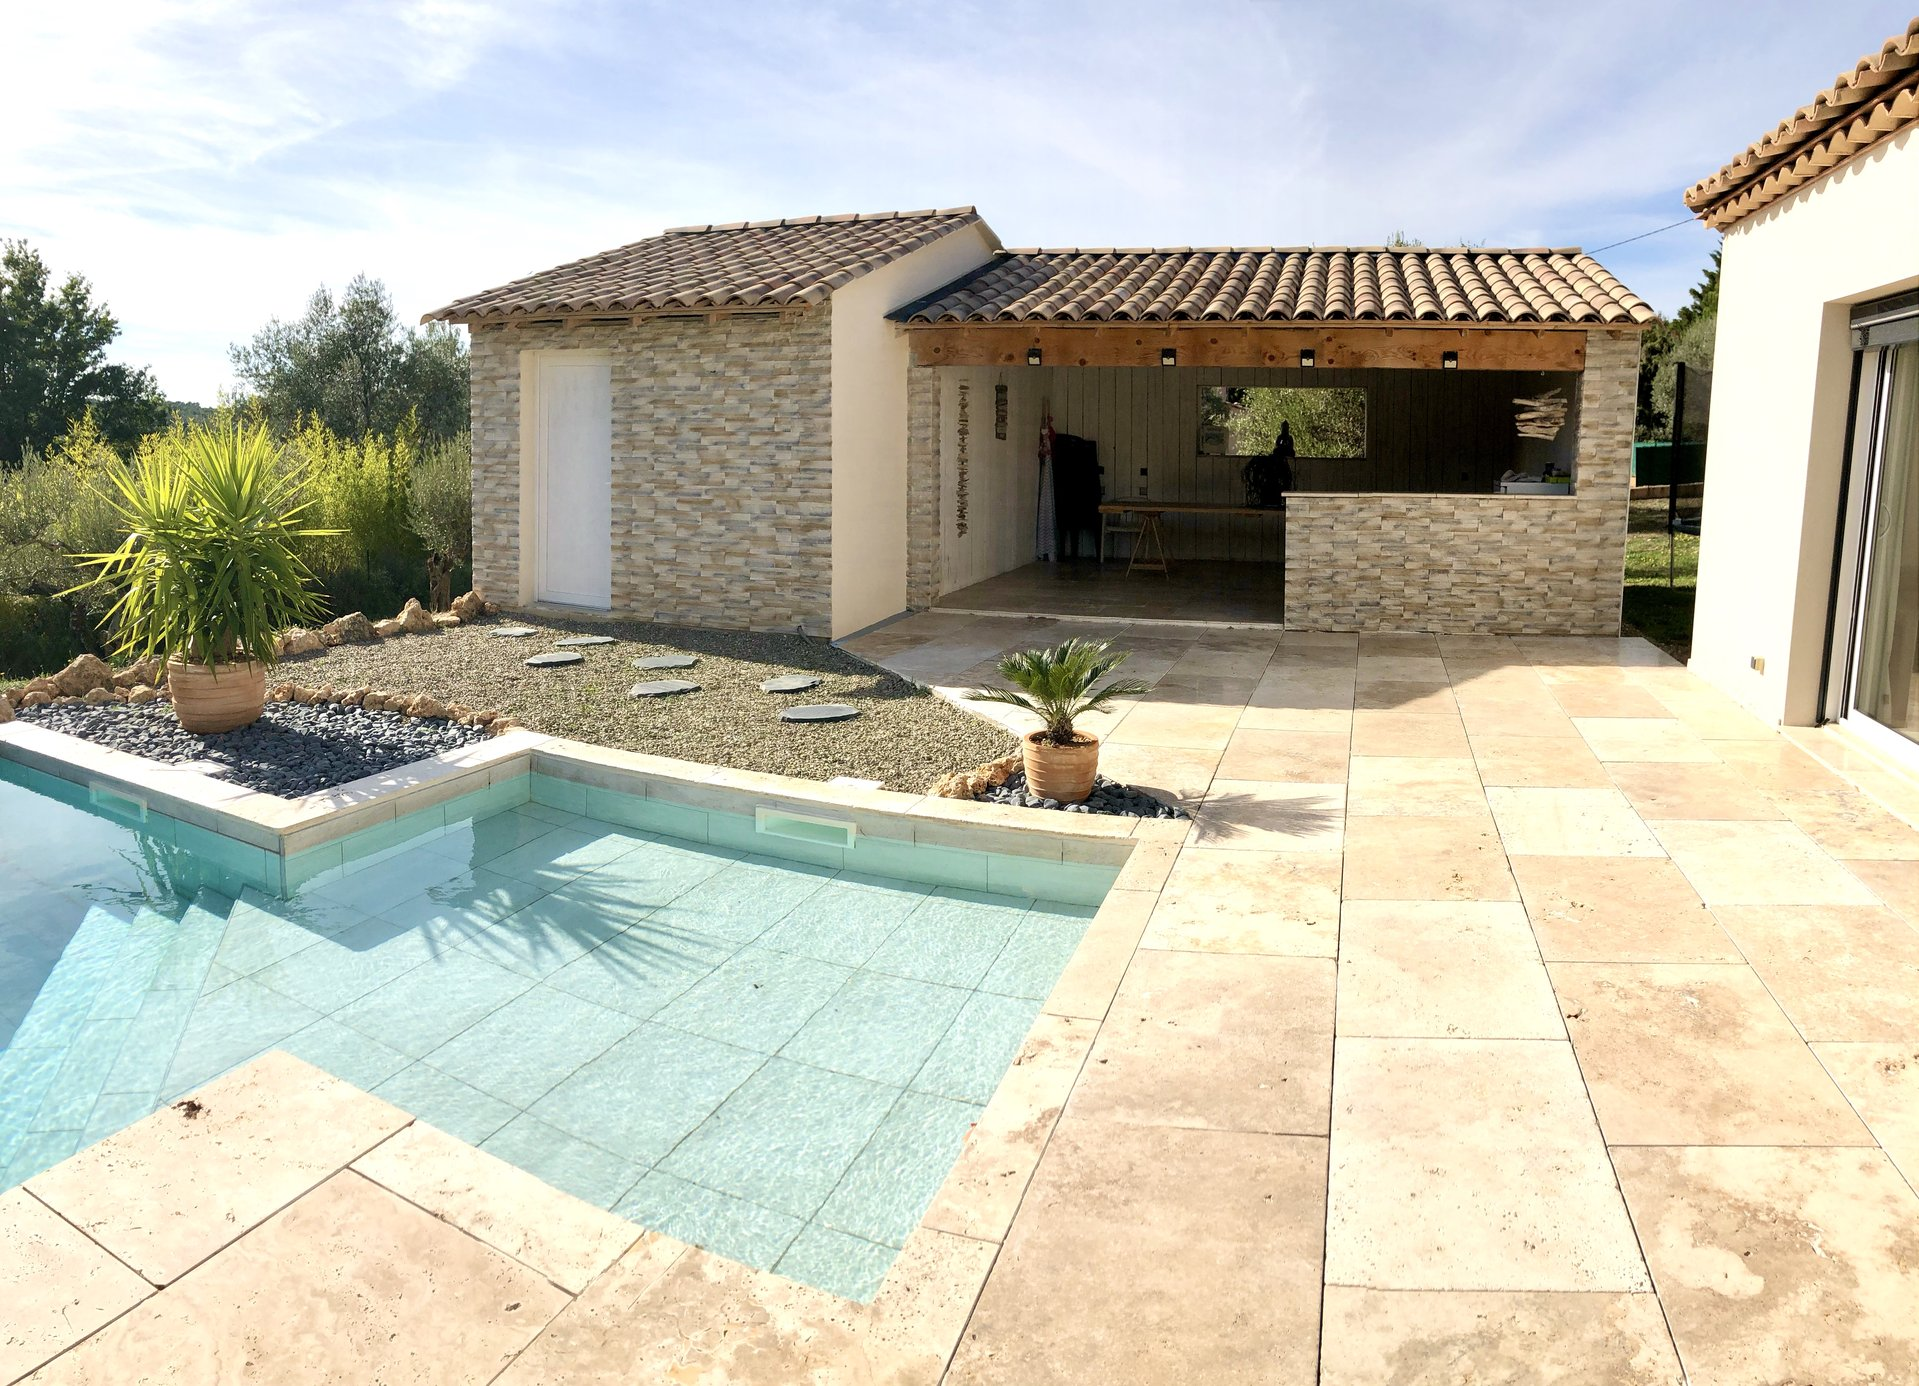 Great modern house in Moissac Bellevue with it's swimming pool on a fenced land of 2747m²